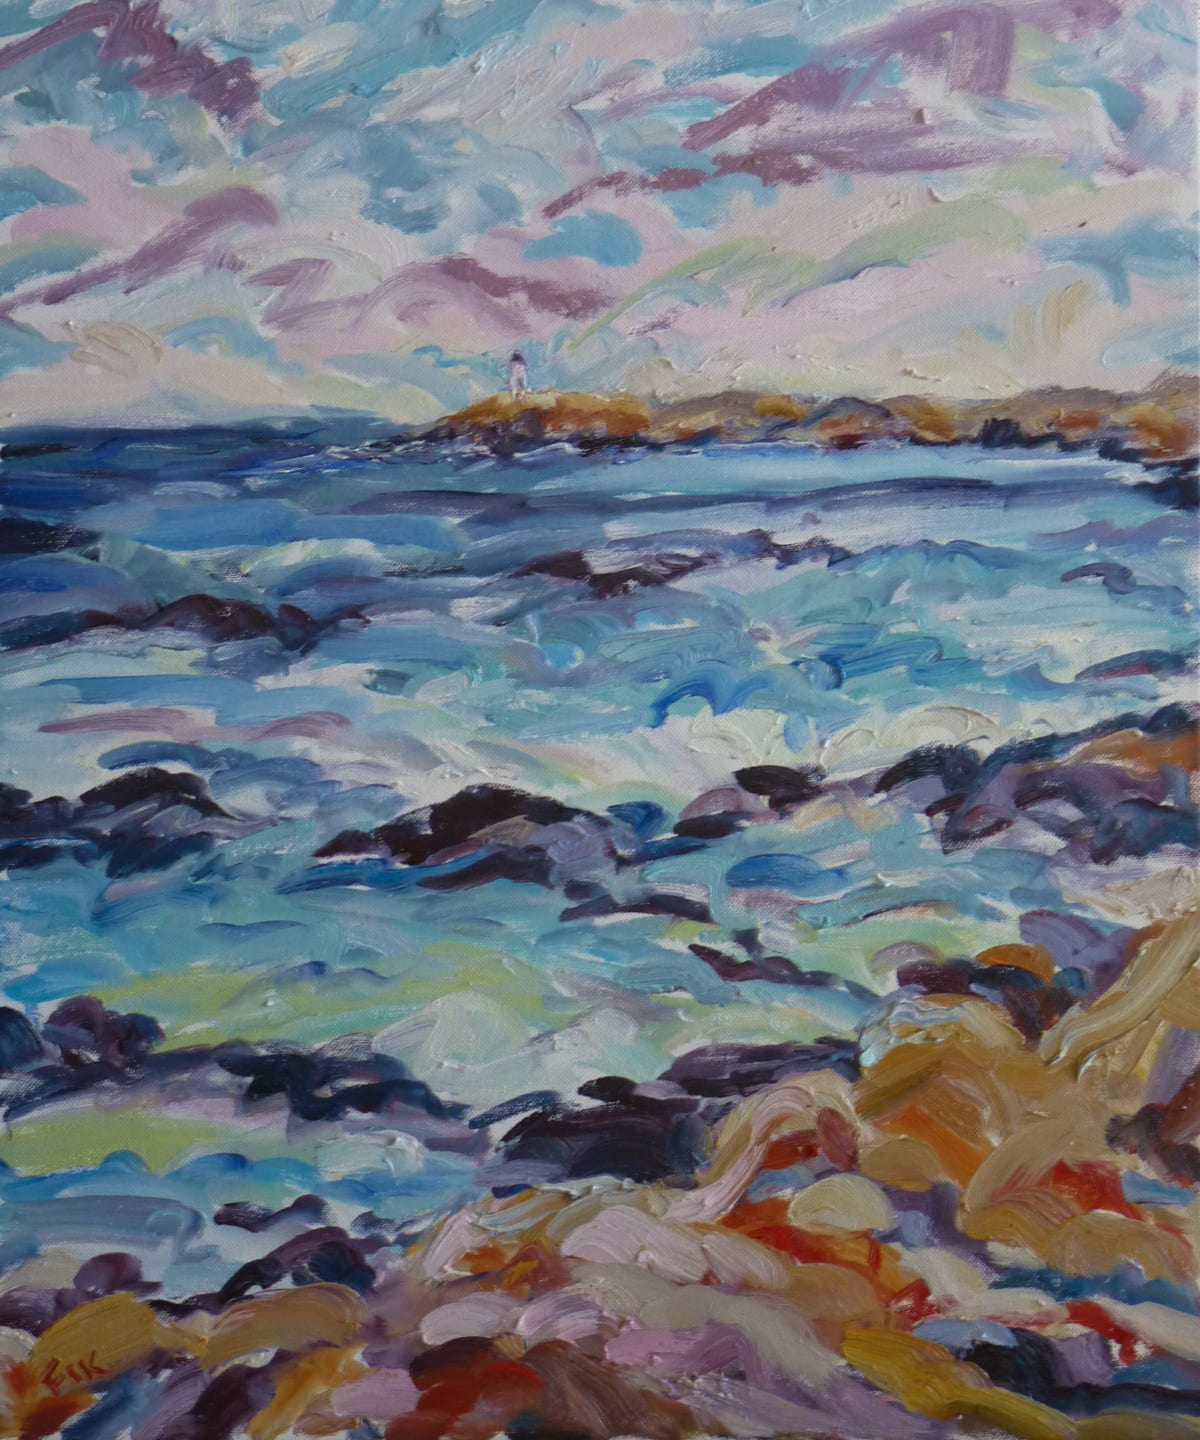 Fi Katzler WINDY DAY AT COTE BLEUE Oil on canvas 22 x 18 in. 55.88 x 45.72 cm